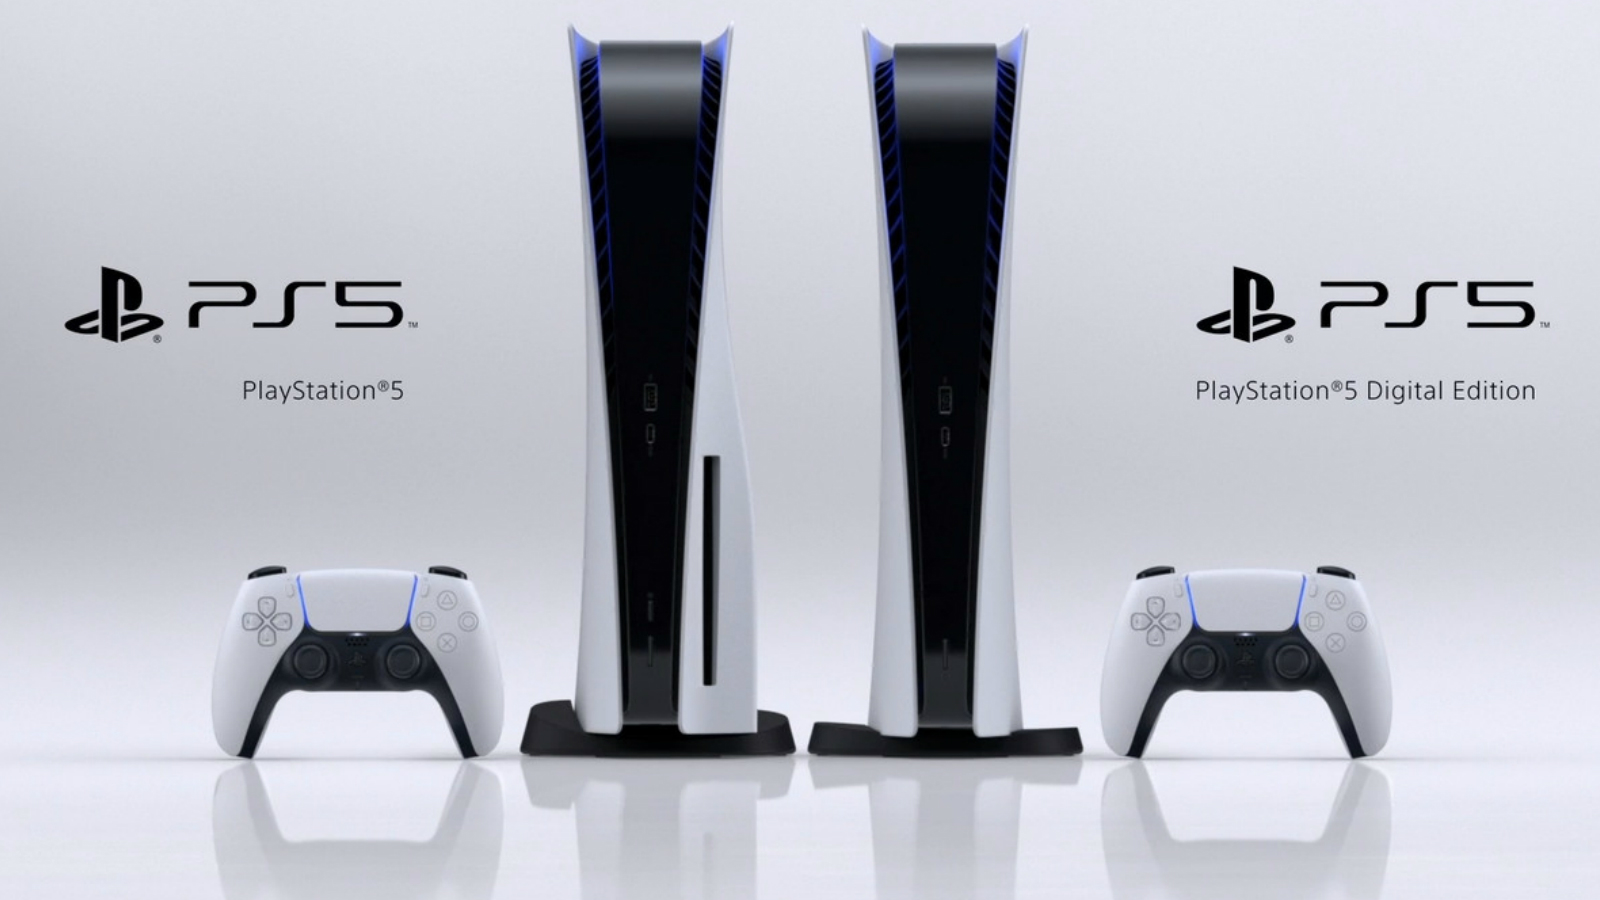 Standard and Digital PlayStation 5 editions